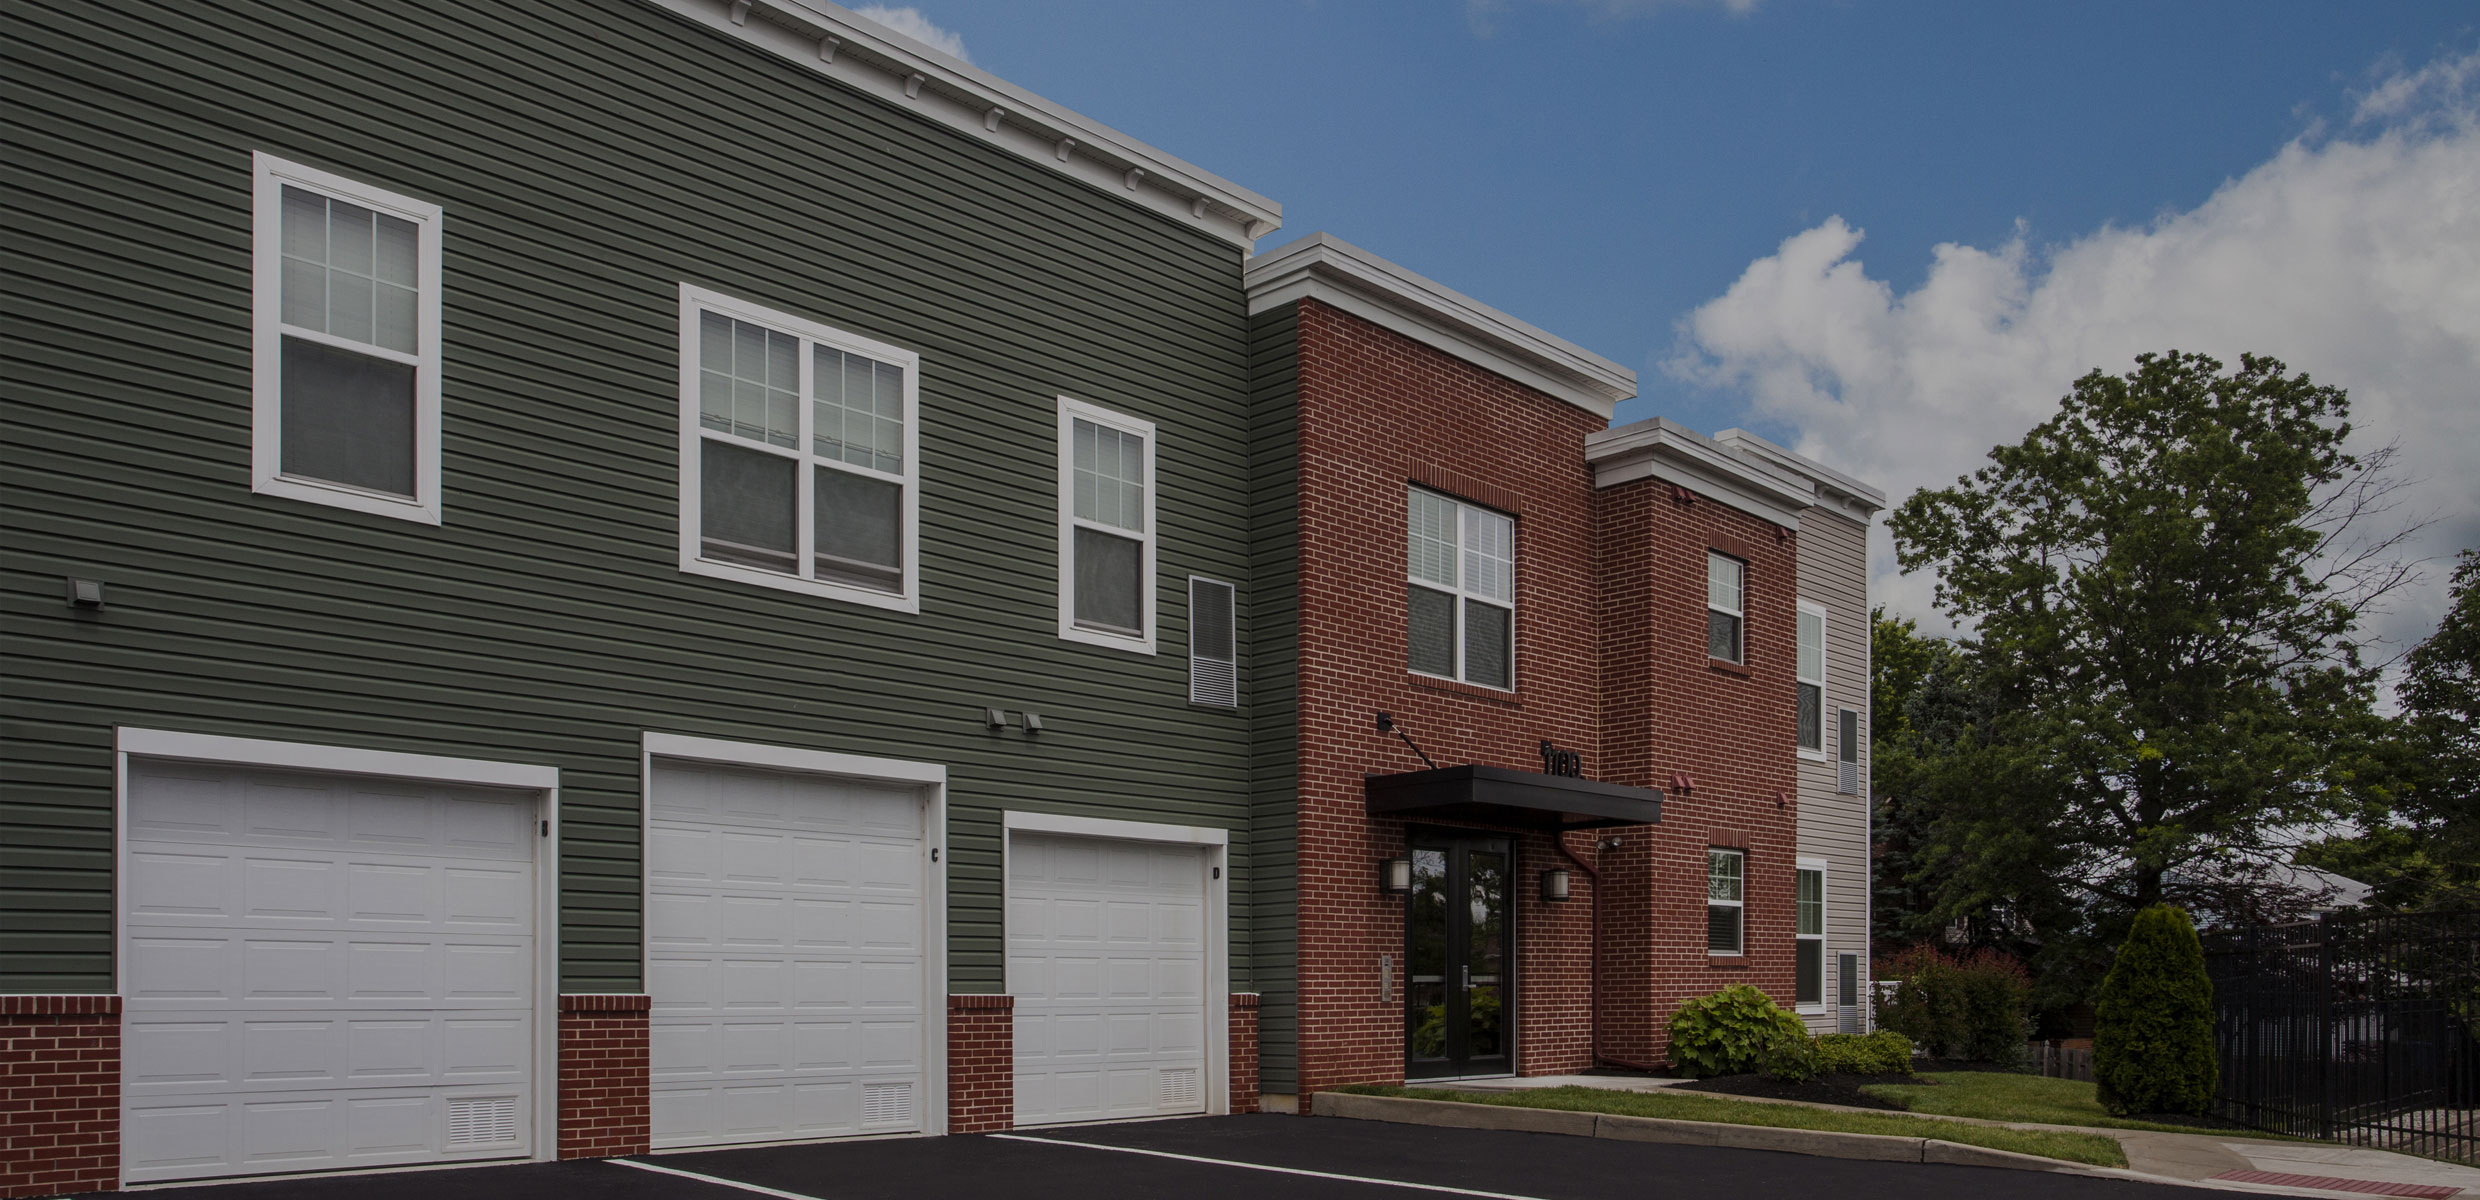 Dwell Cherry Hill Apartments with garages